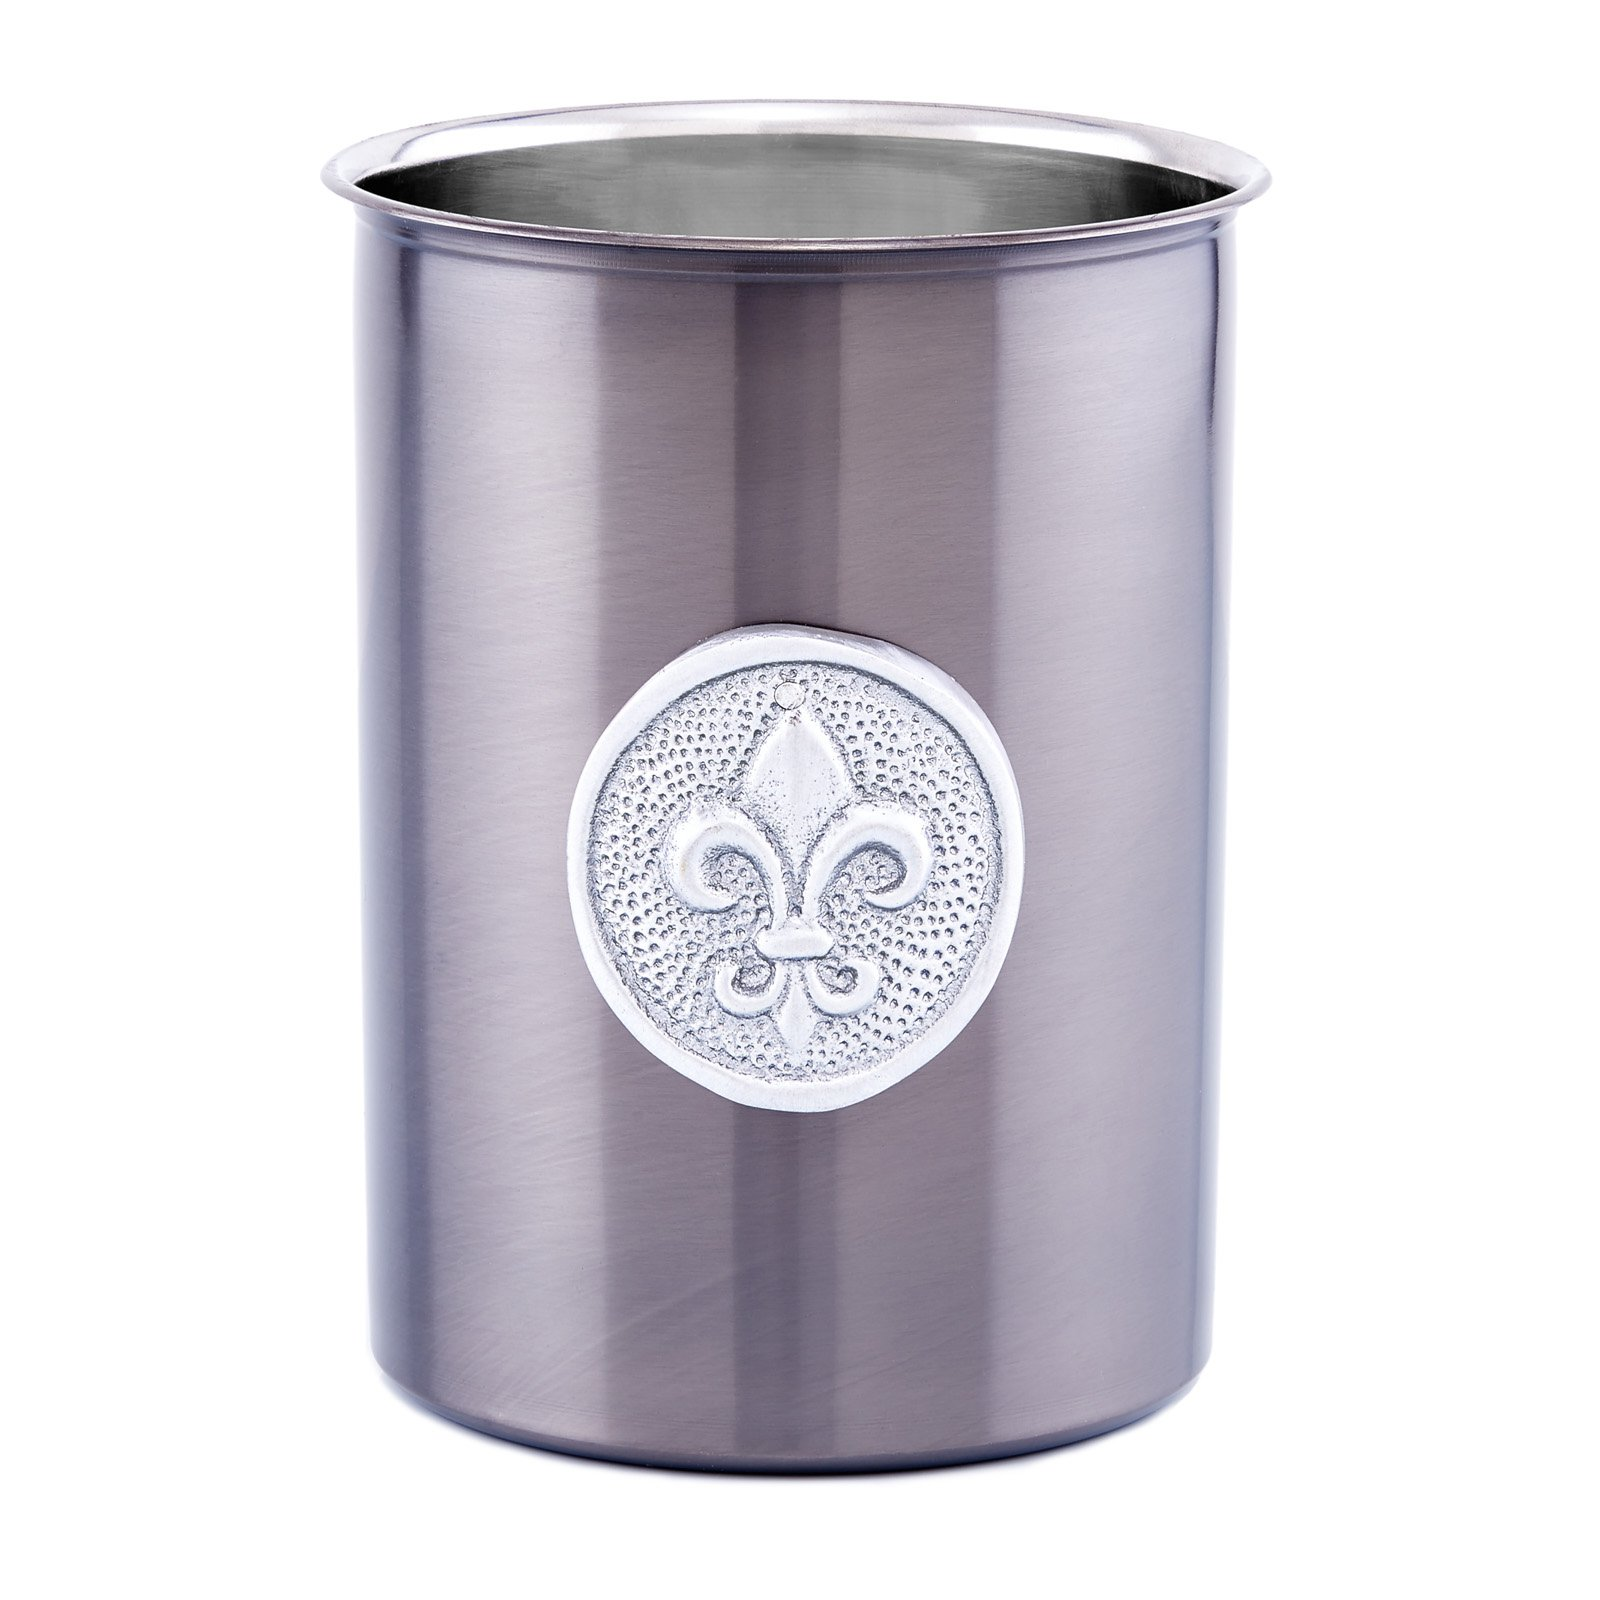 Old Dutch International Fleur de Lis Kitchen Tool Caddy